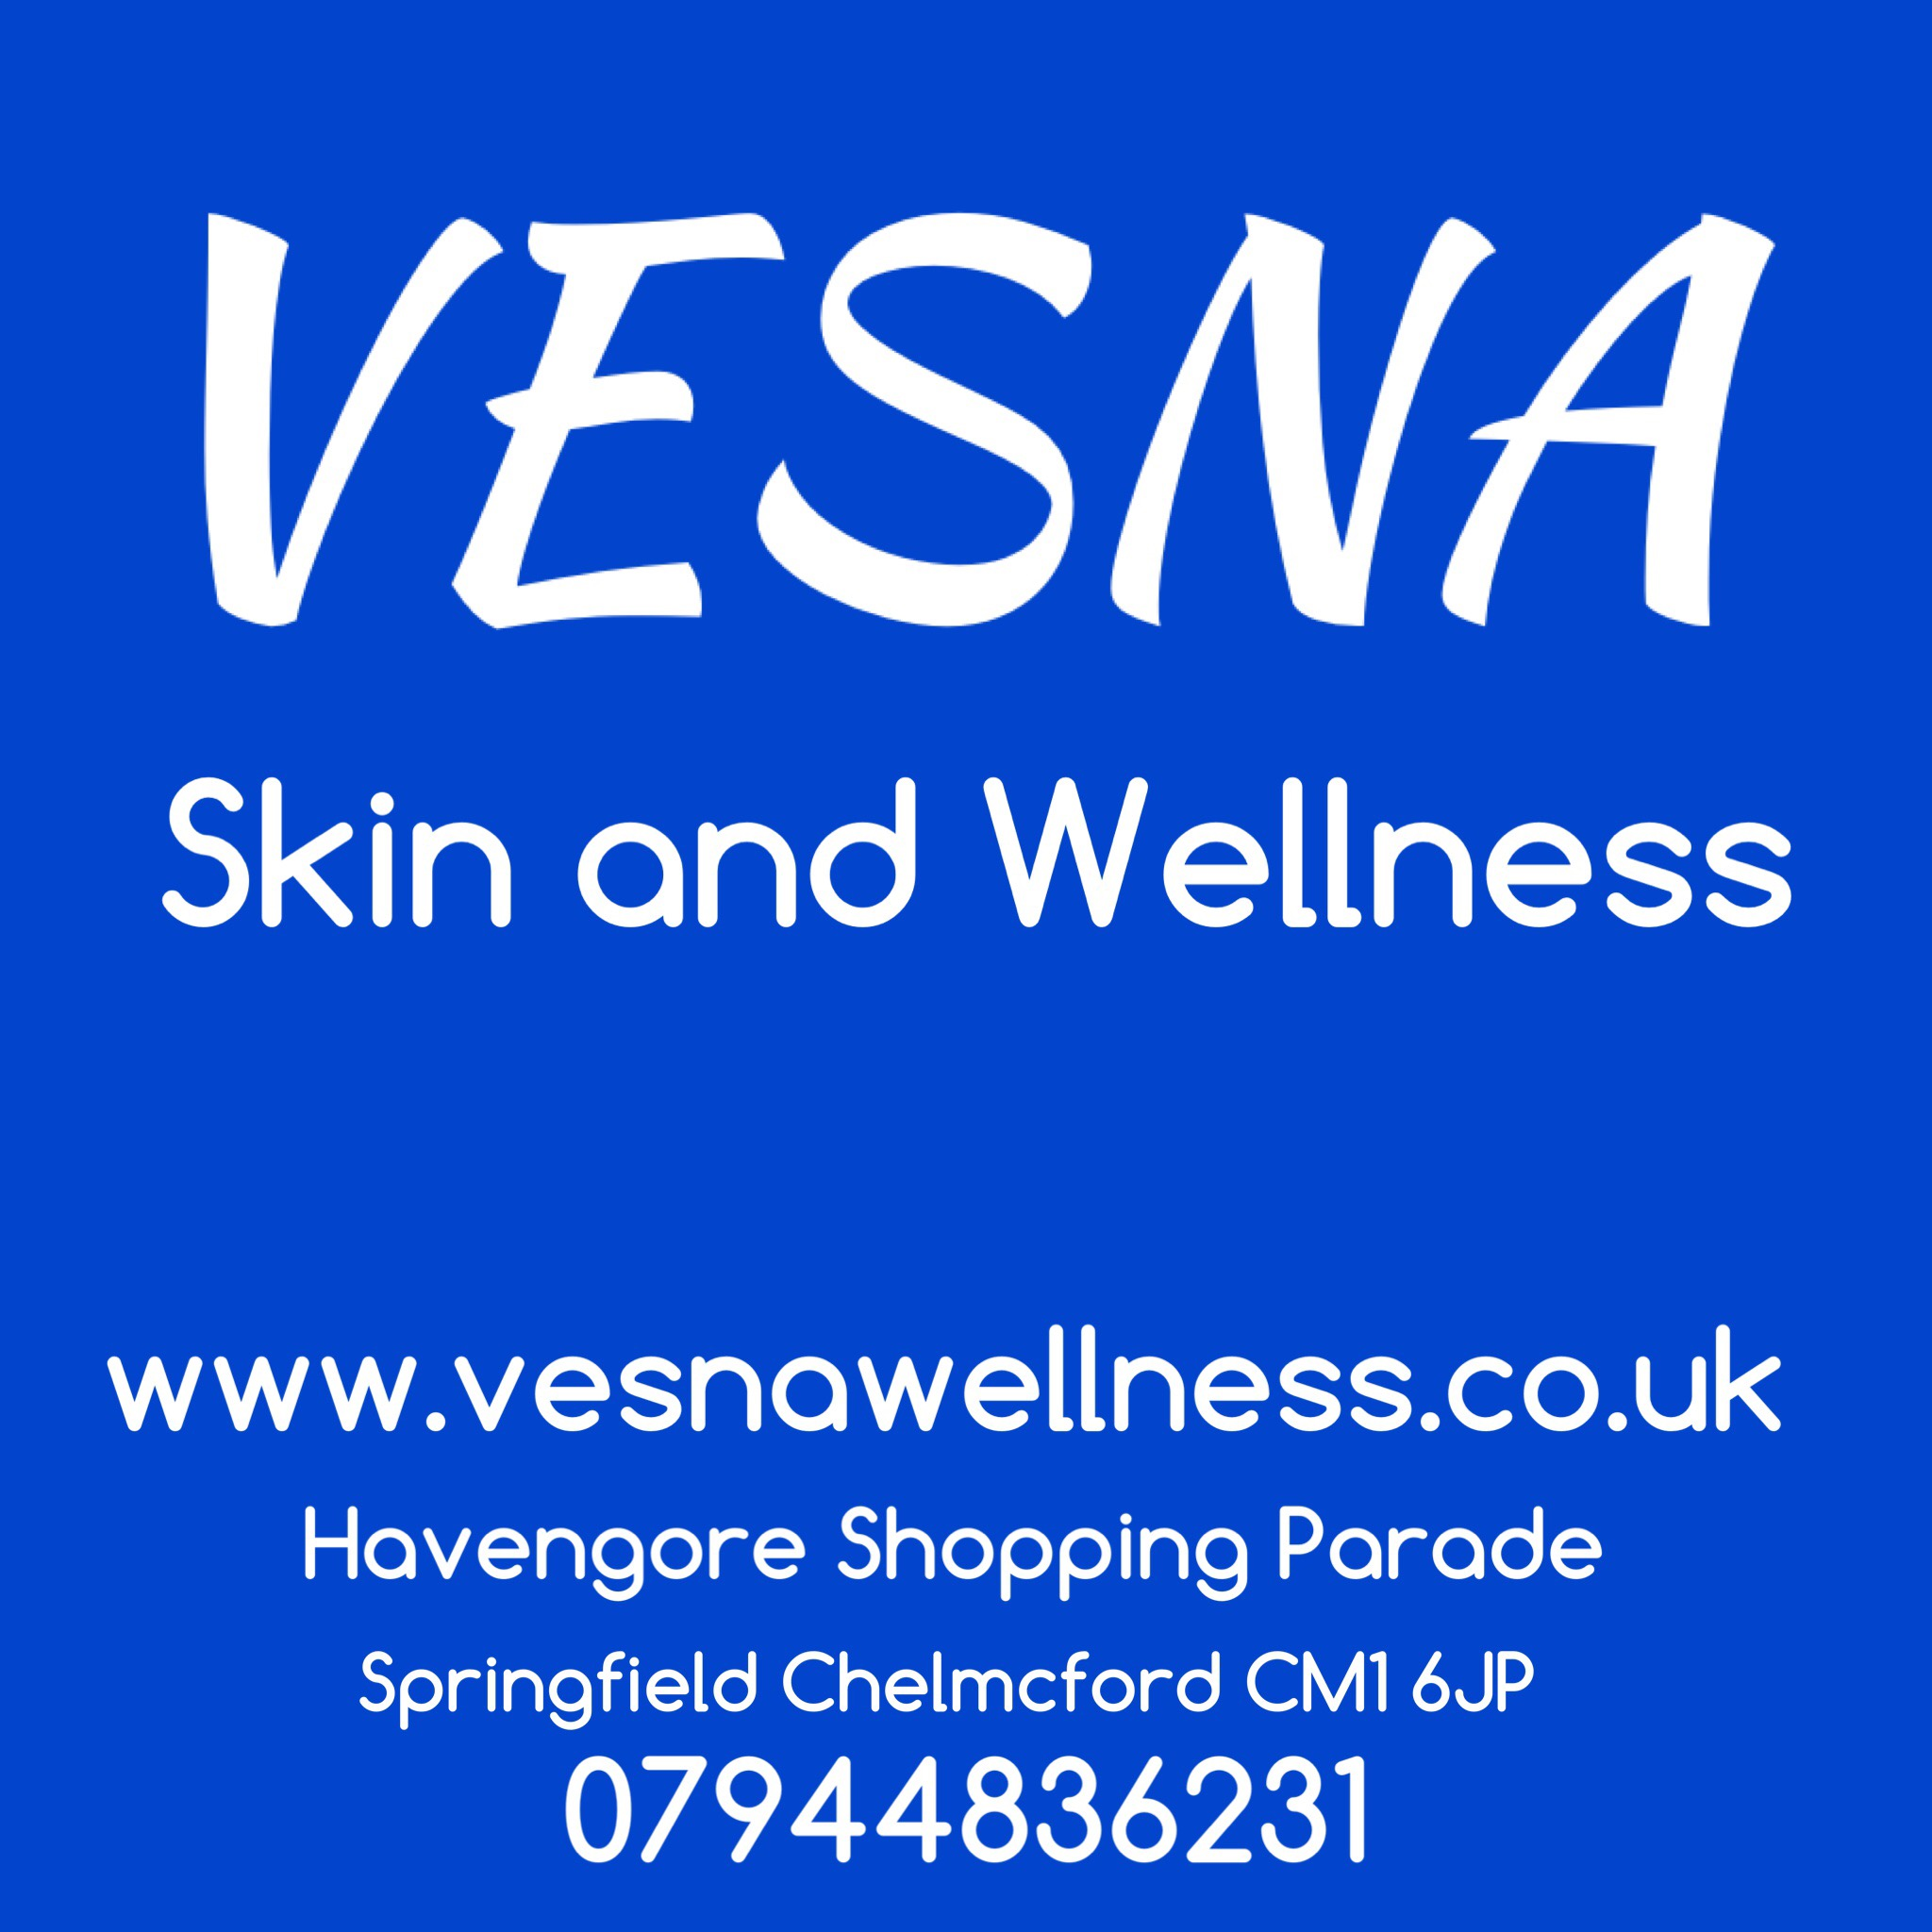 VESNA Skin and Wellness